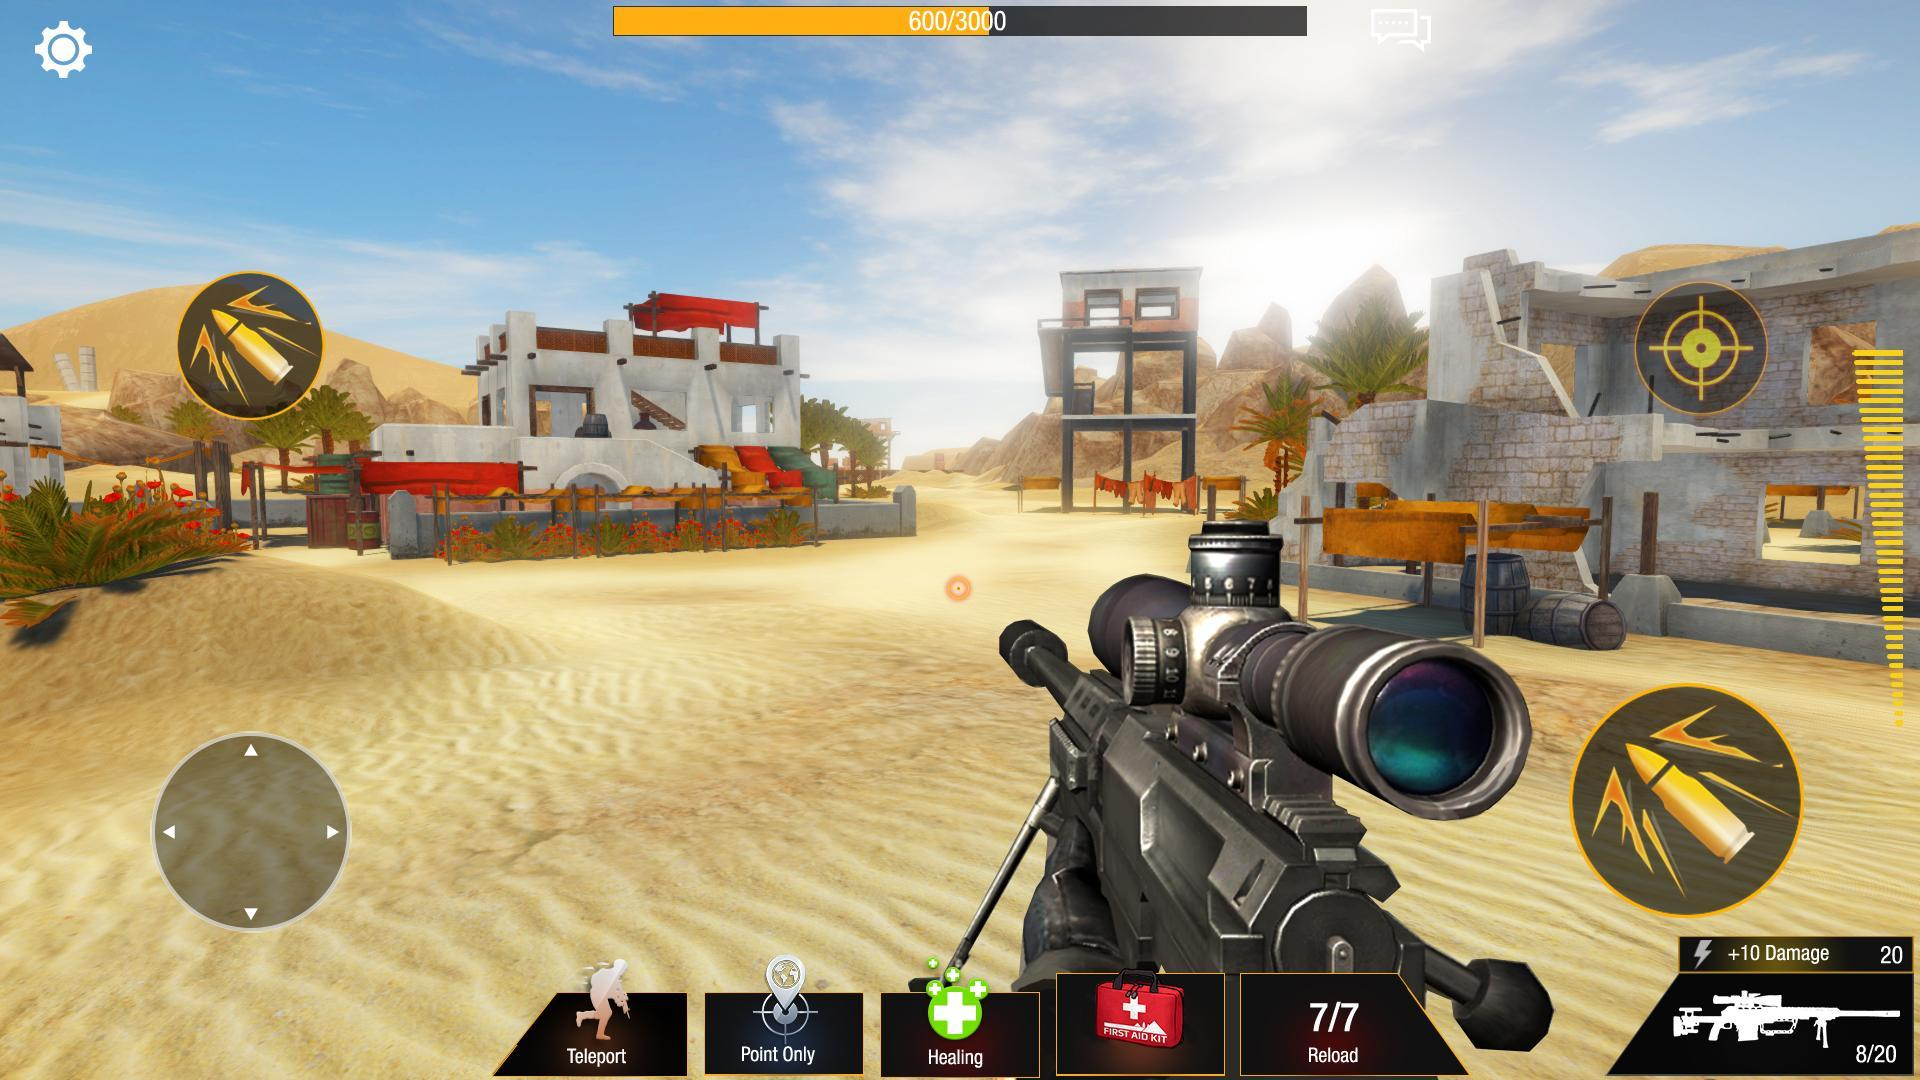 hot sale hot product sleek Sniper Games: Bullet Strike - Free Shooting Game for Android ...